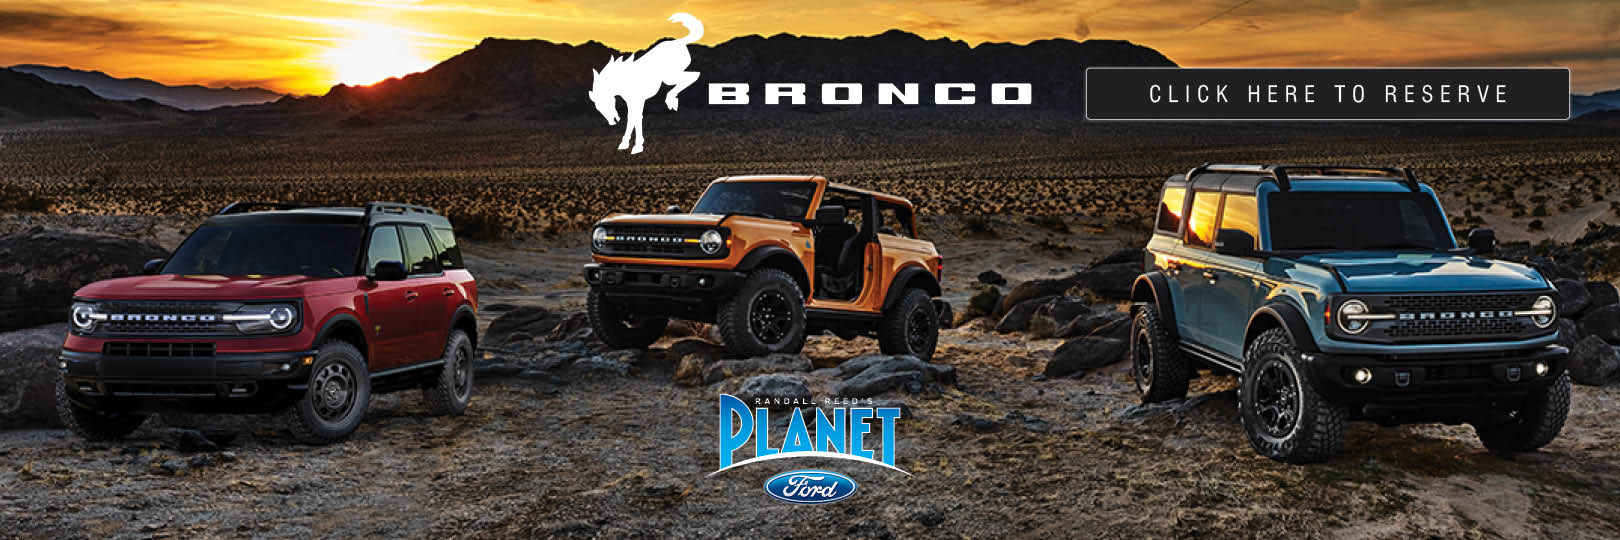 Bronco Returns!